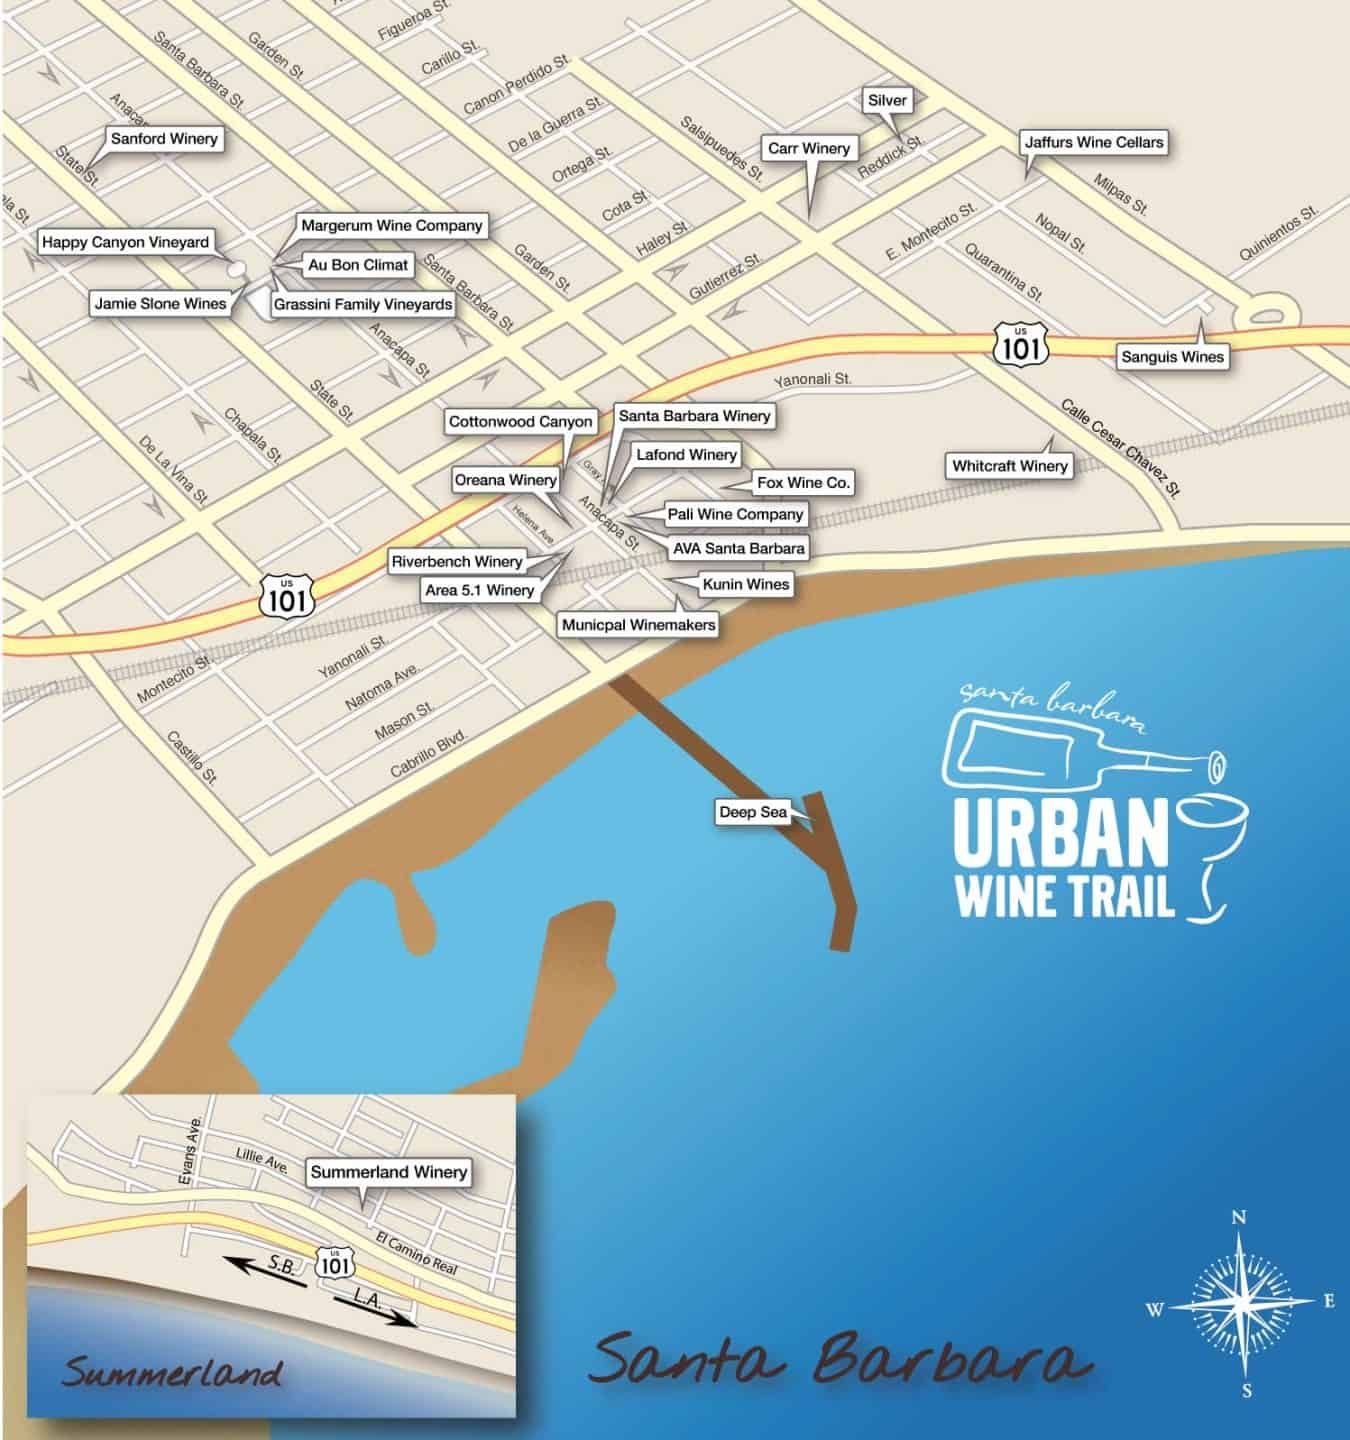 santa barbara urban wine trail map